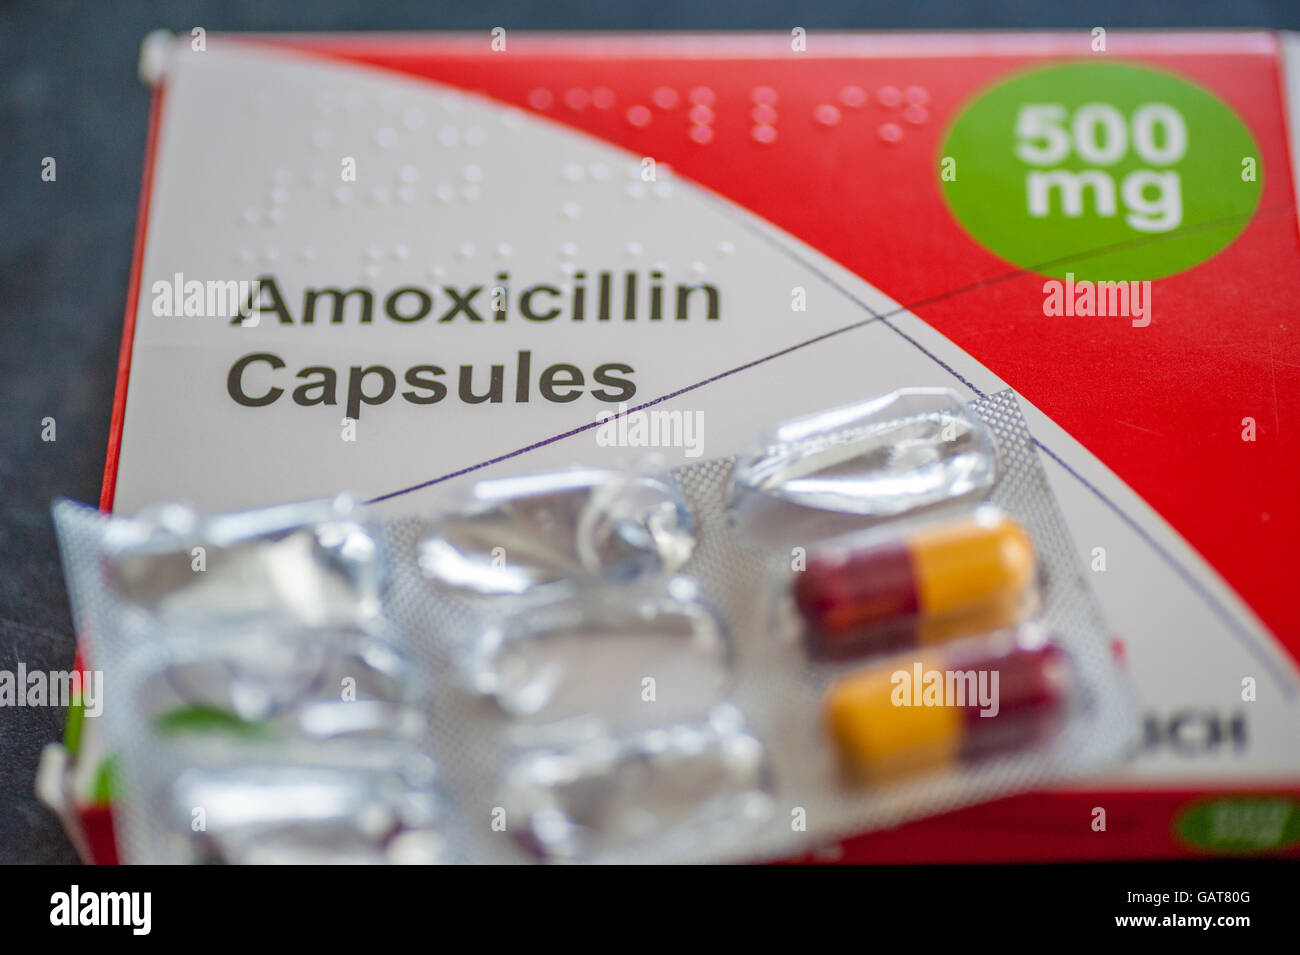 A pack of Amoxicillin 500mg antibiotics capsules Stock ...